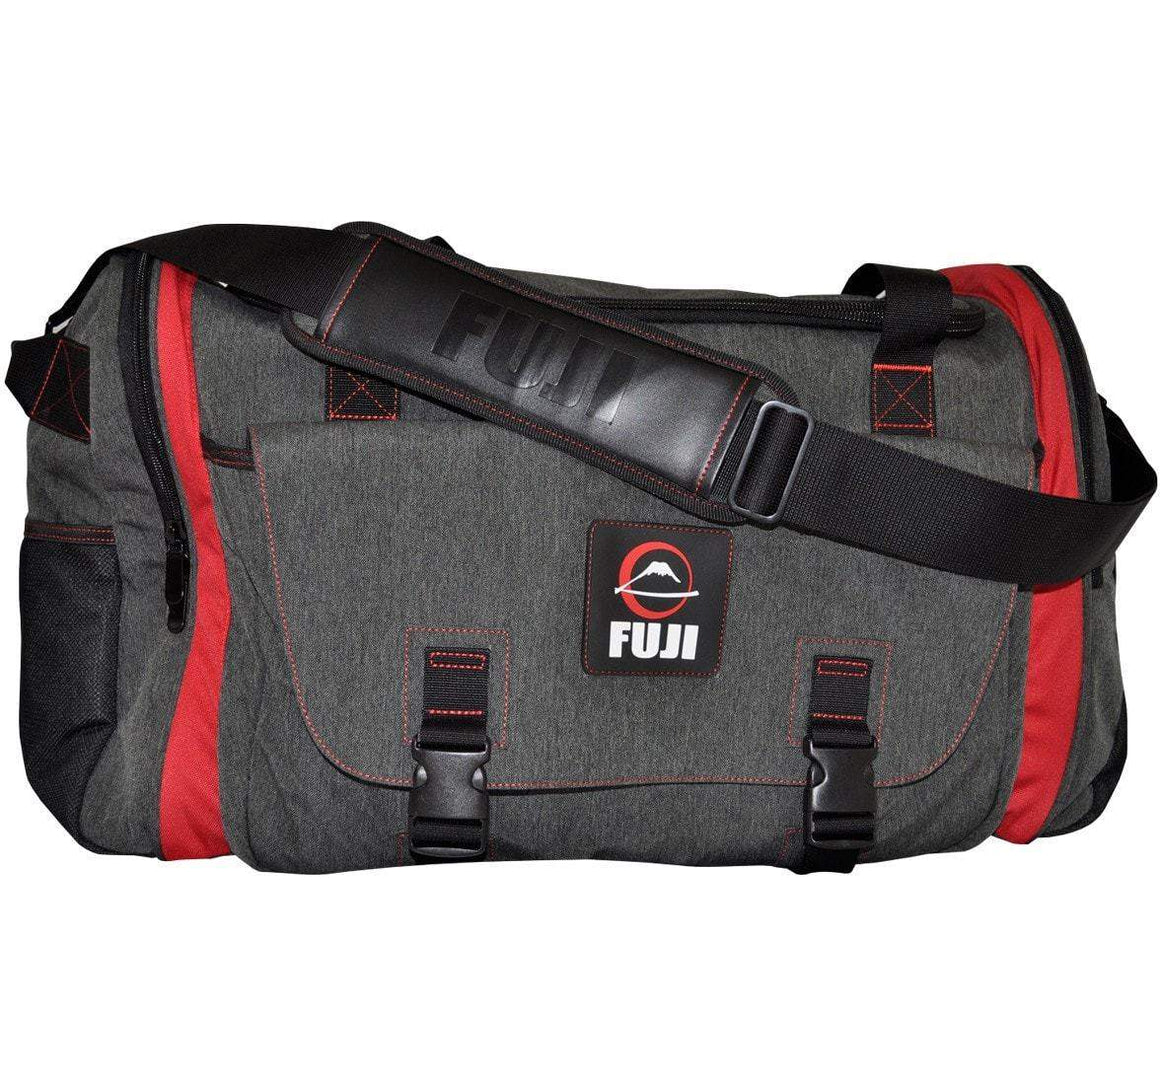 Fuji High Capacity Gear Bag Side View